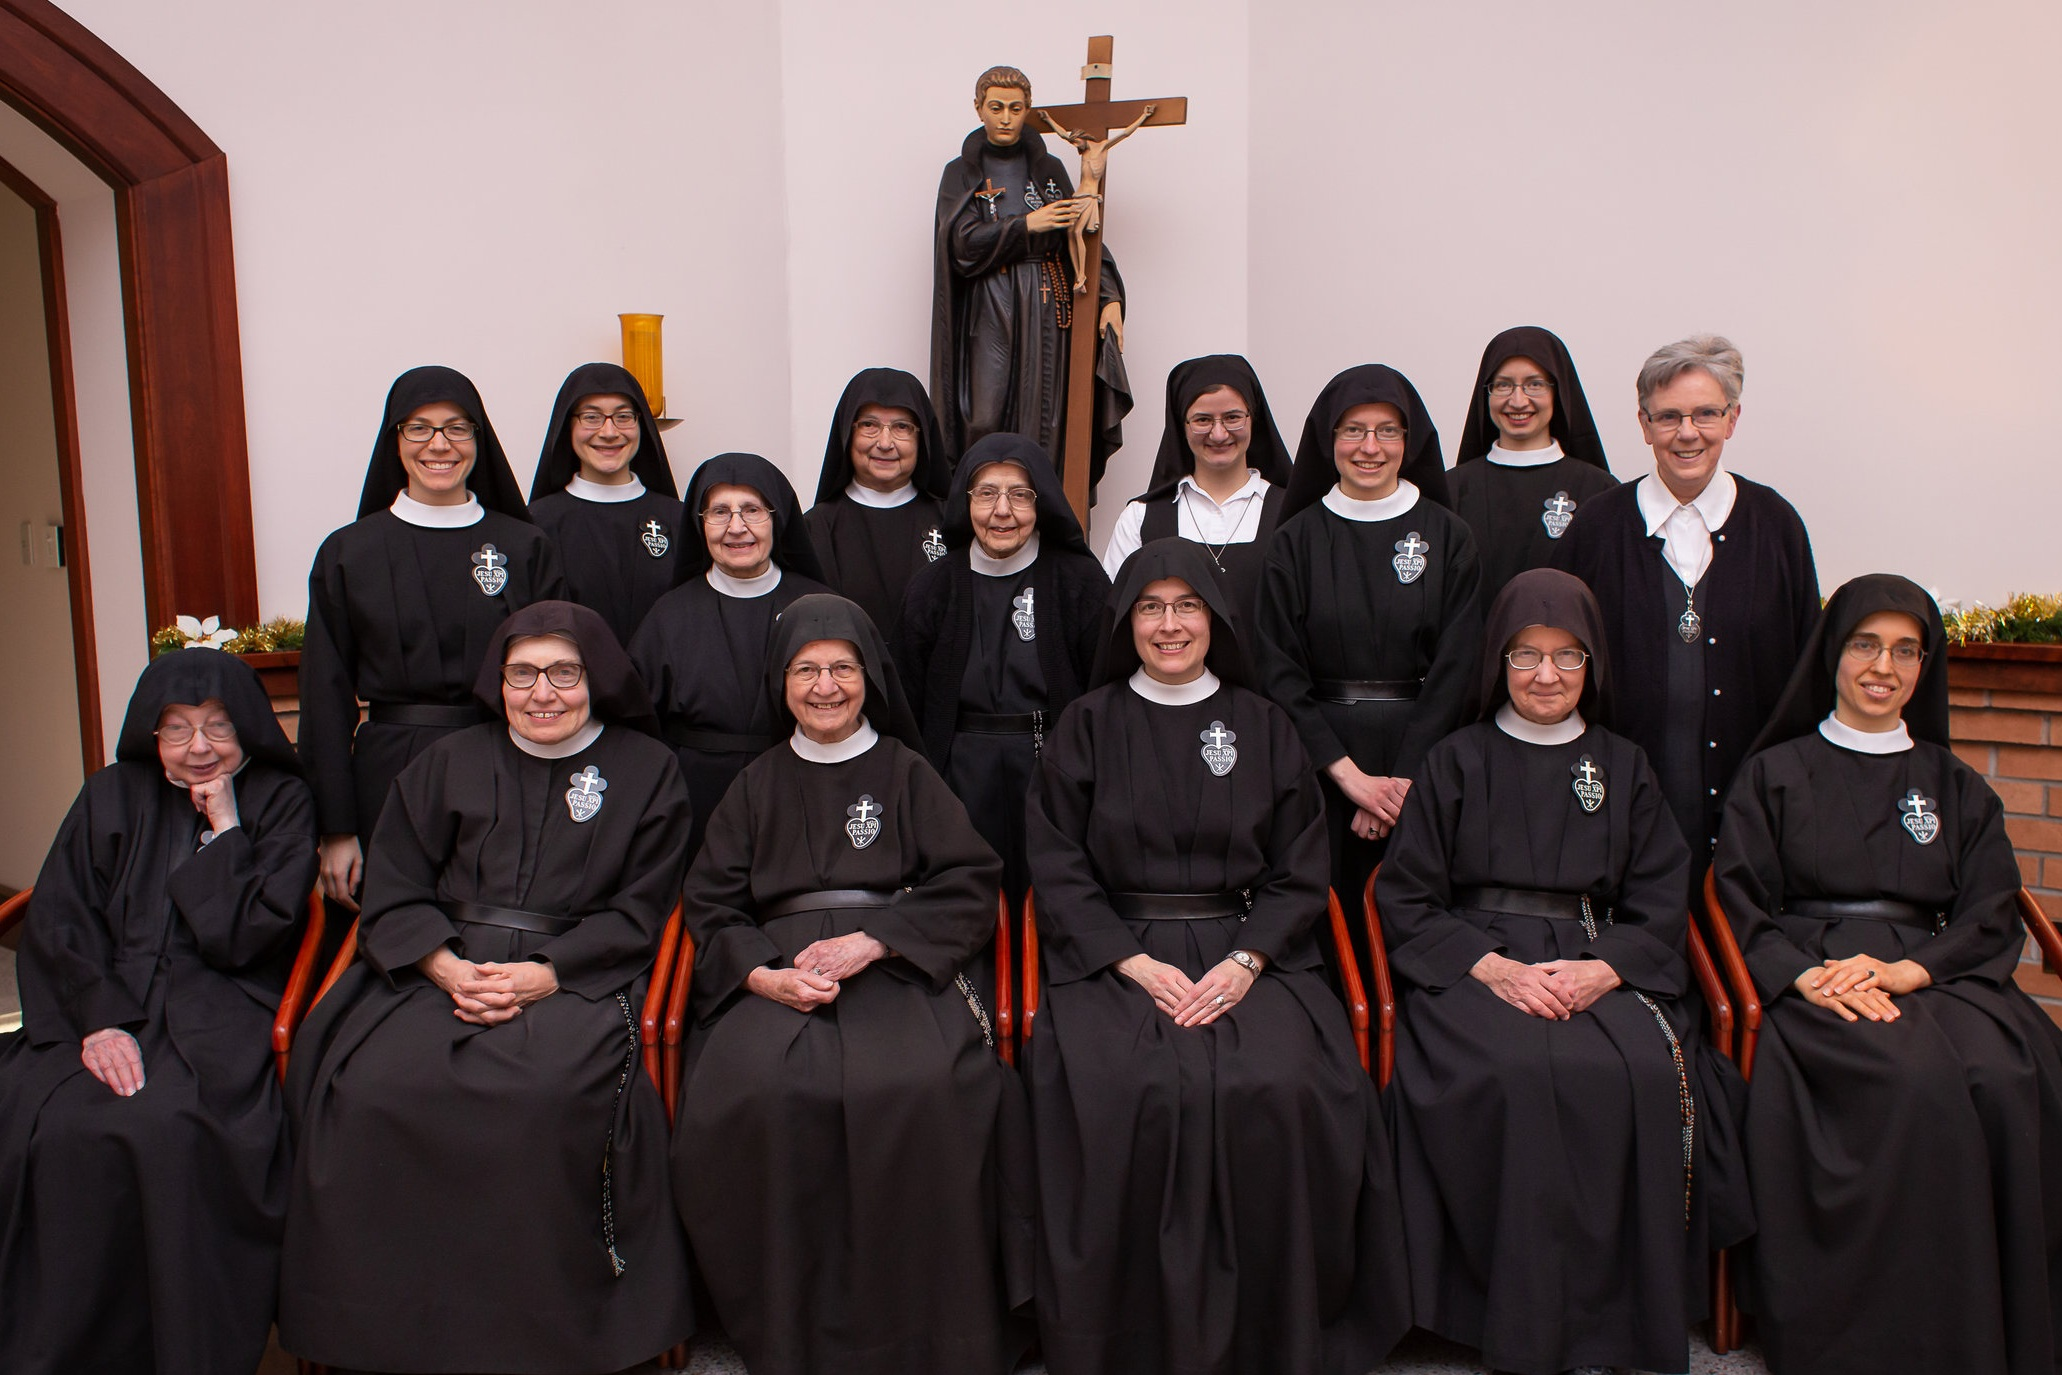 The last community photo taken before Sr. Therese Marie was called home to God in January 2019